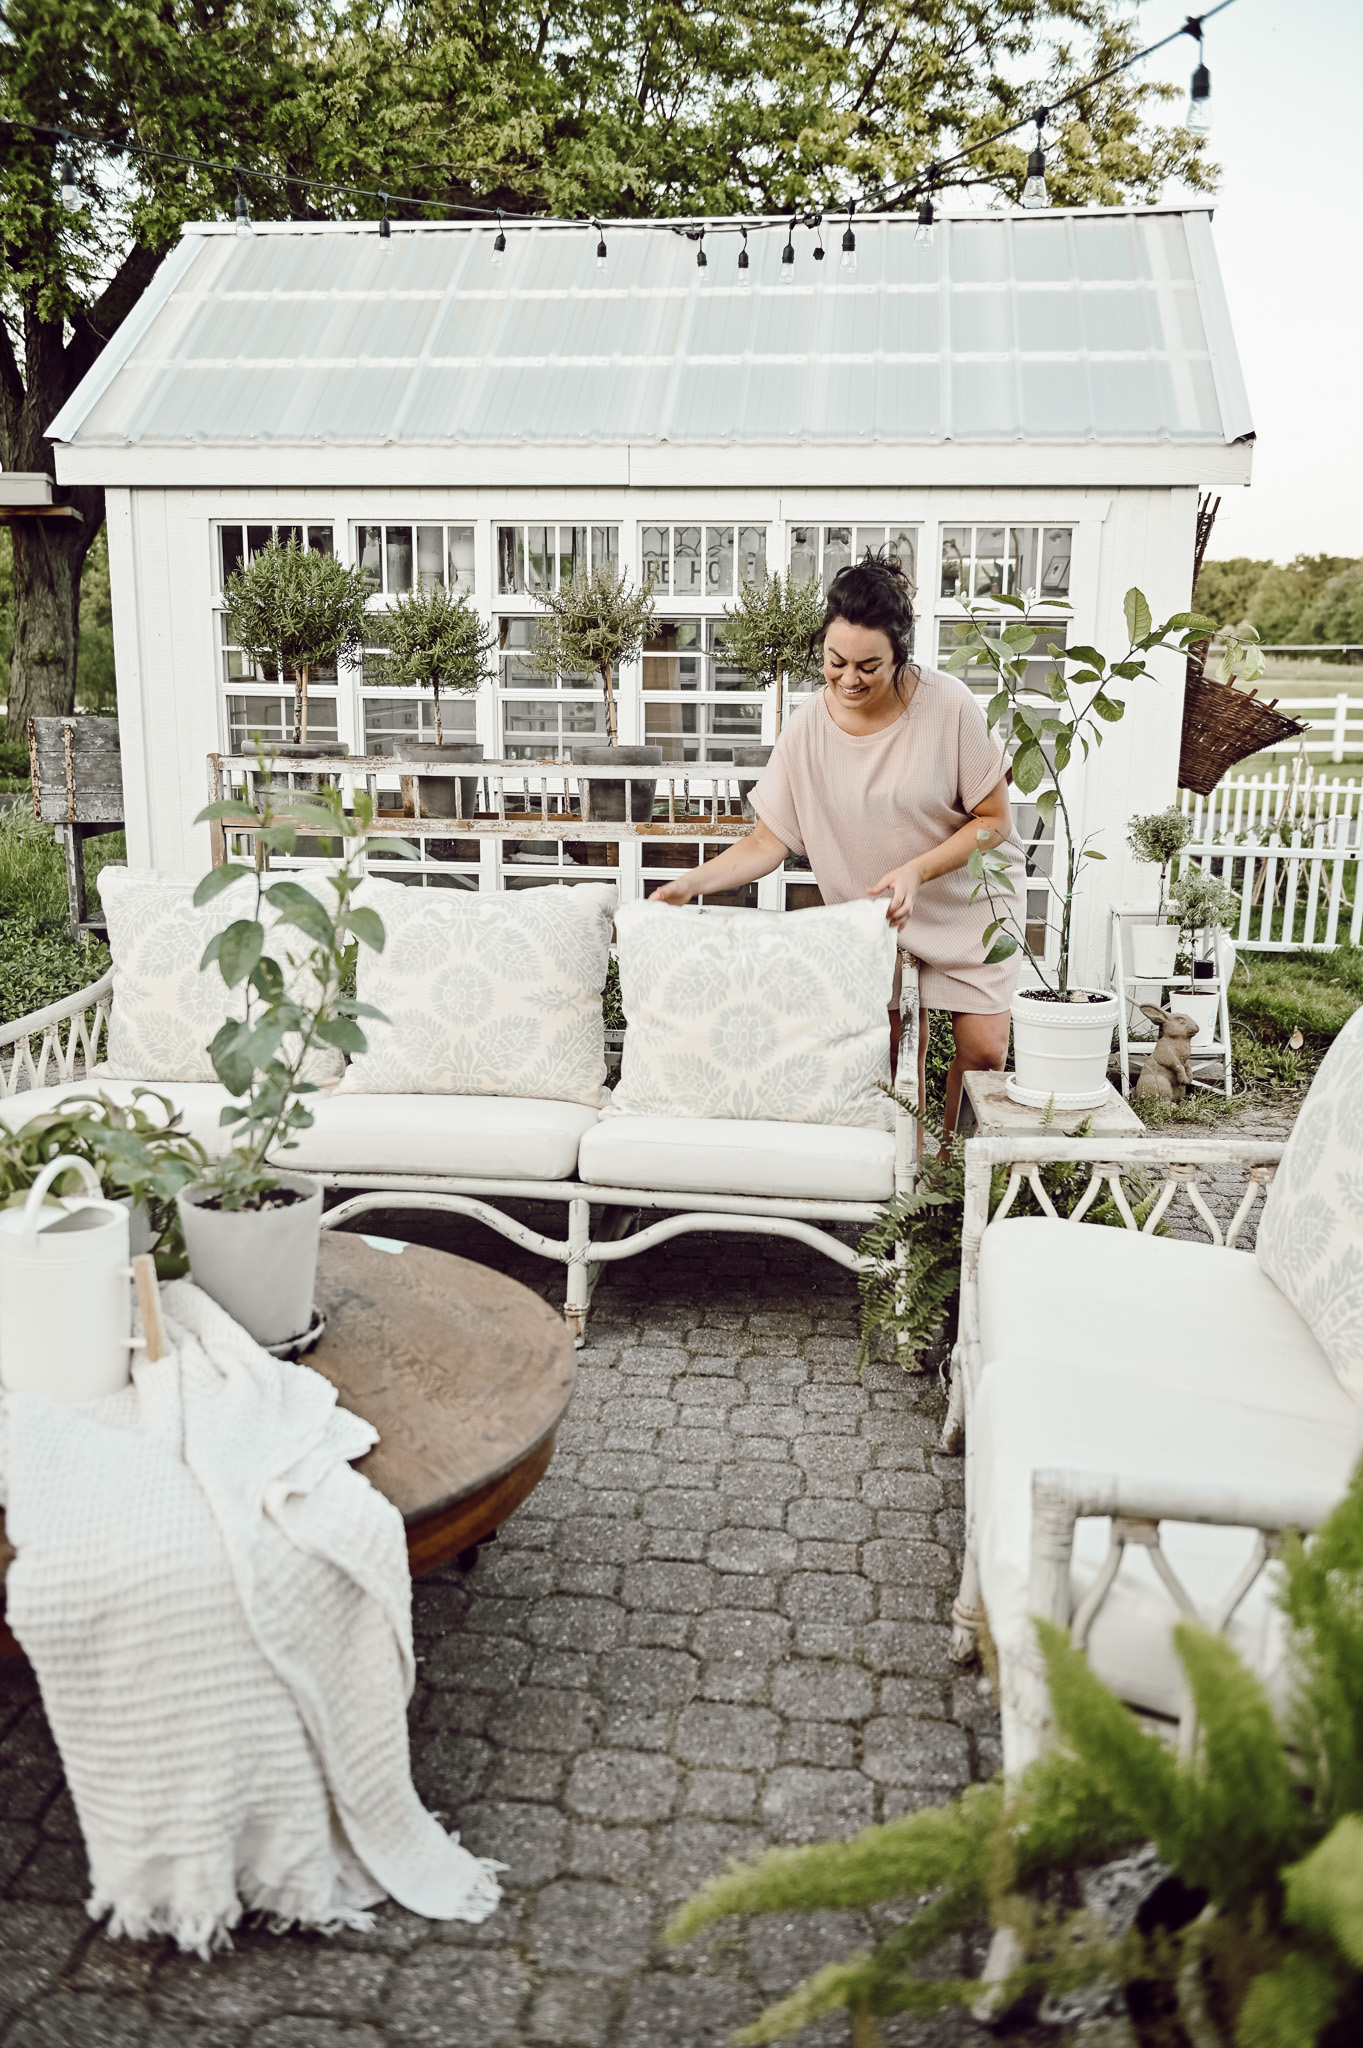 How to Protect your Patio fabrics